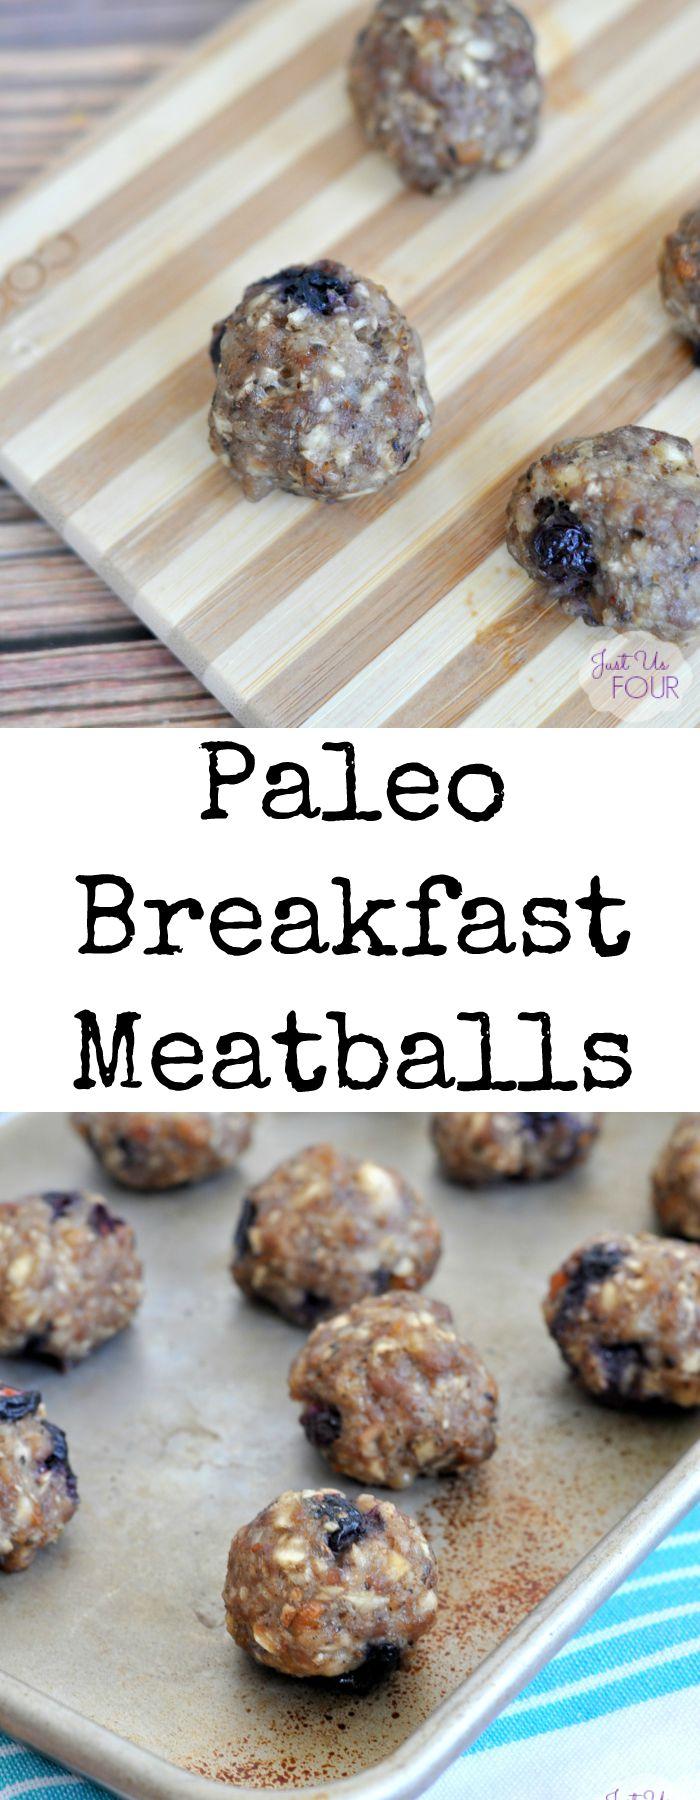 Paleo breakfast meatballs are the perfect breakfast option when you are at home or on the go.